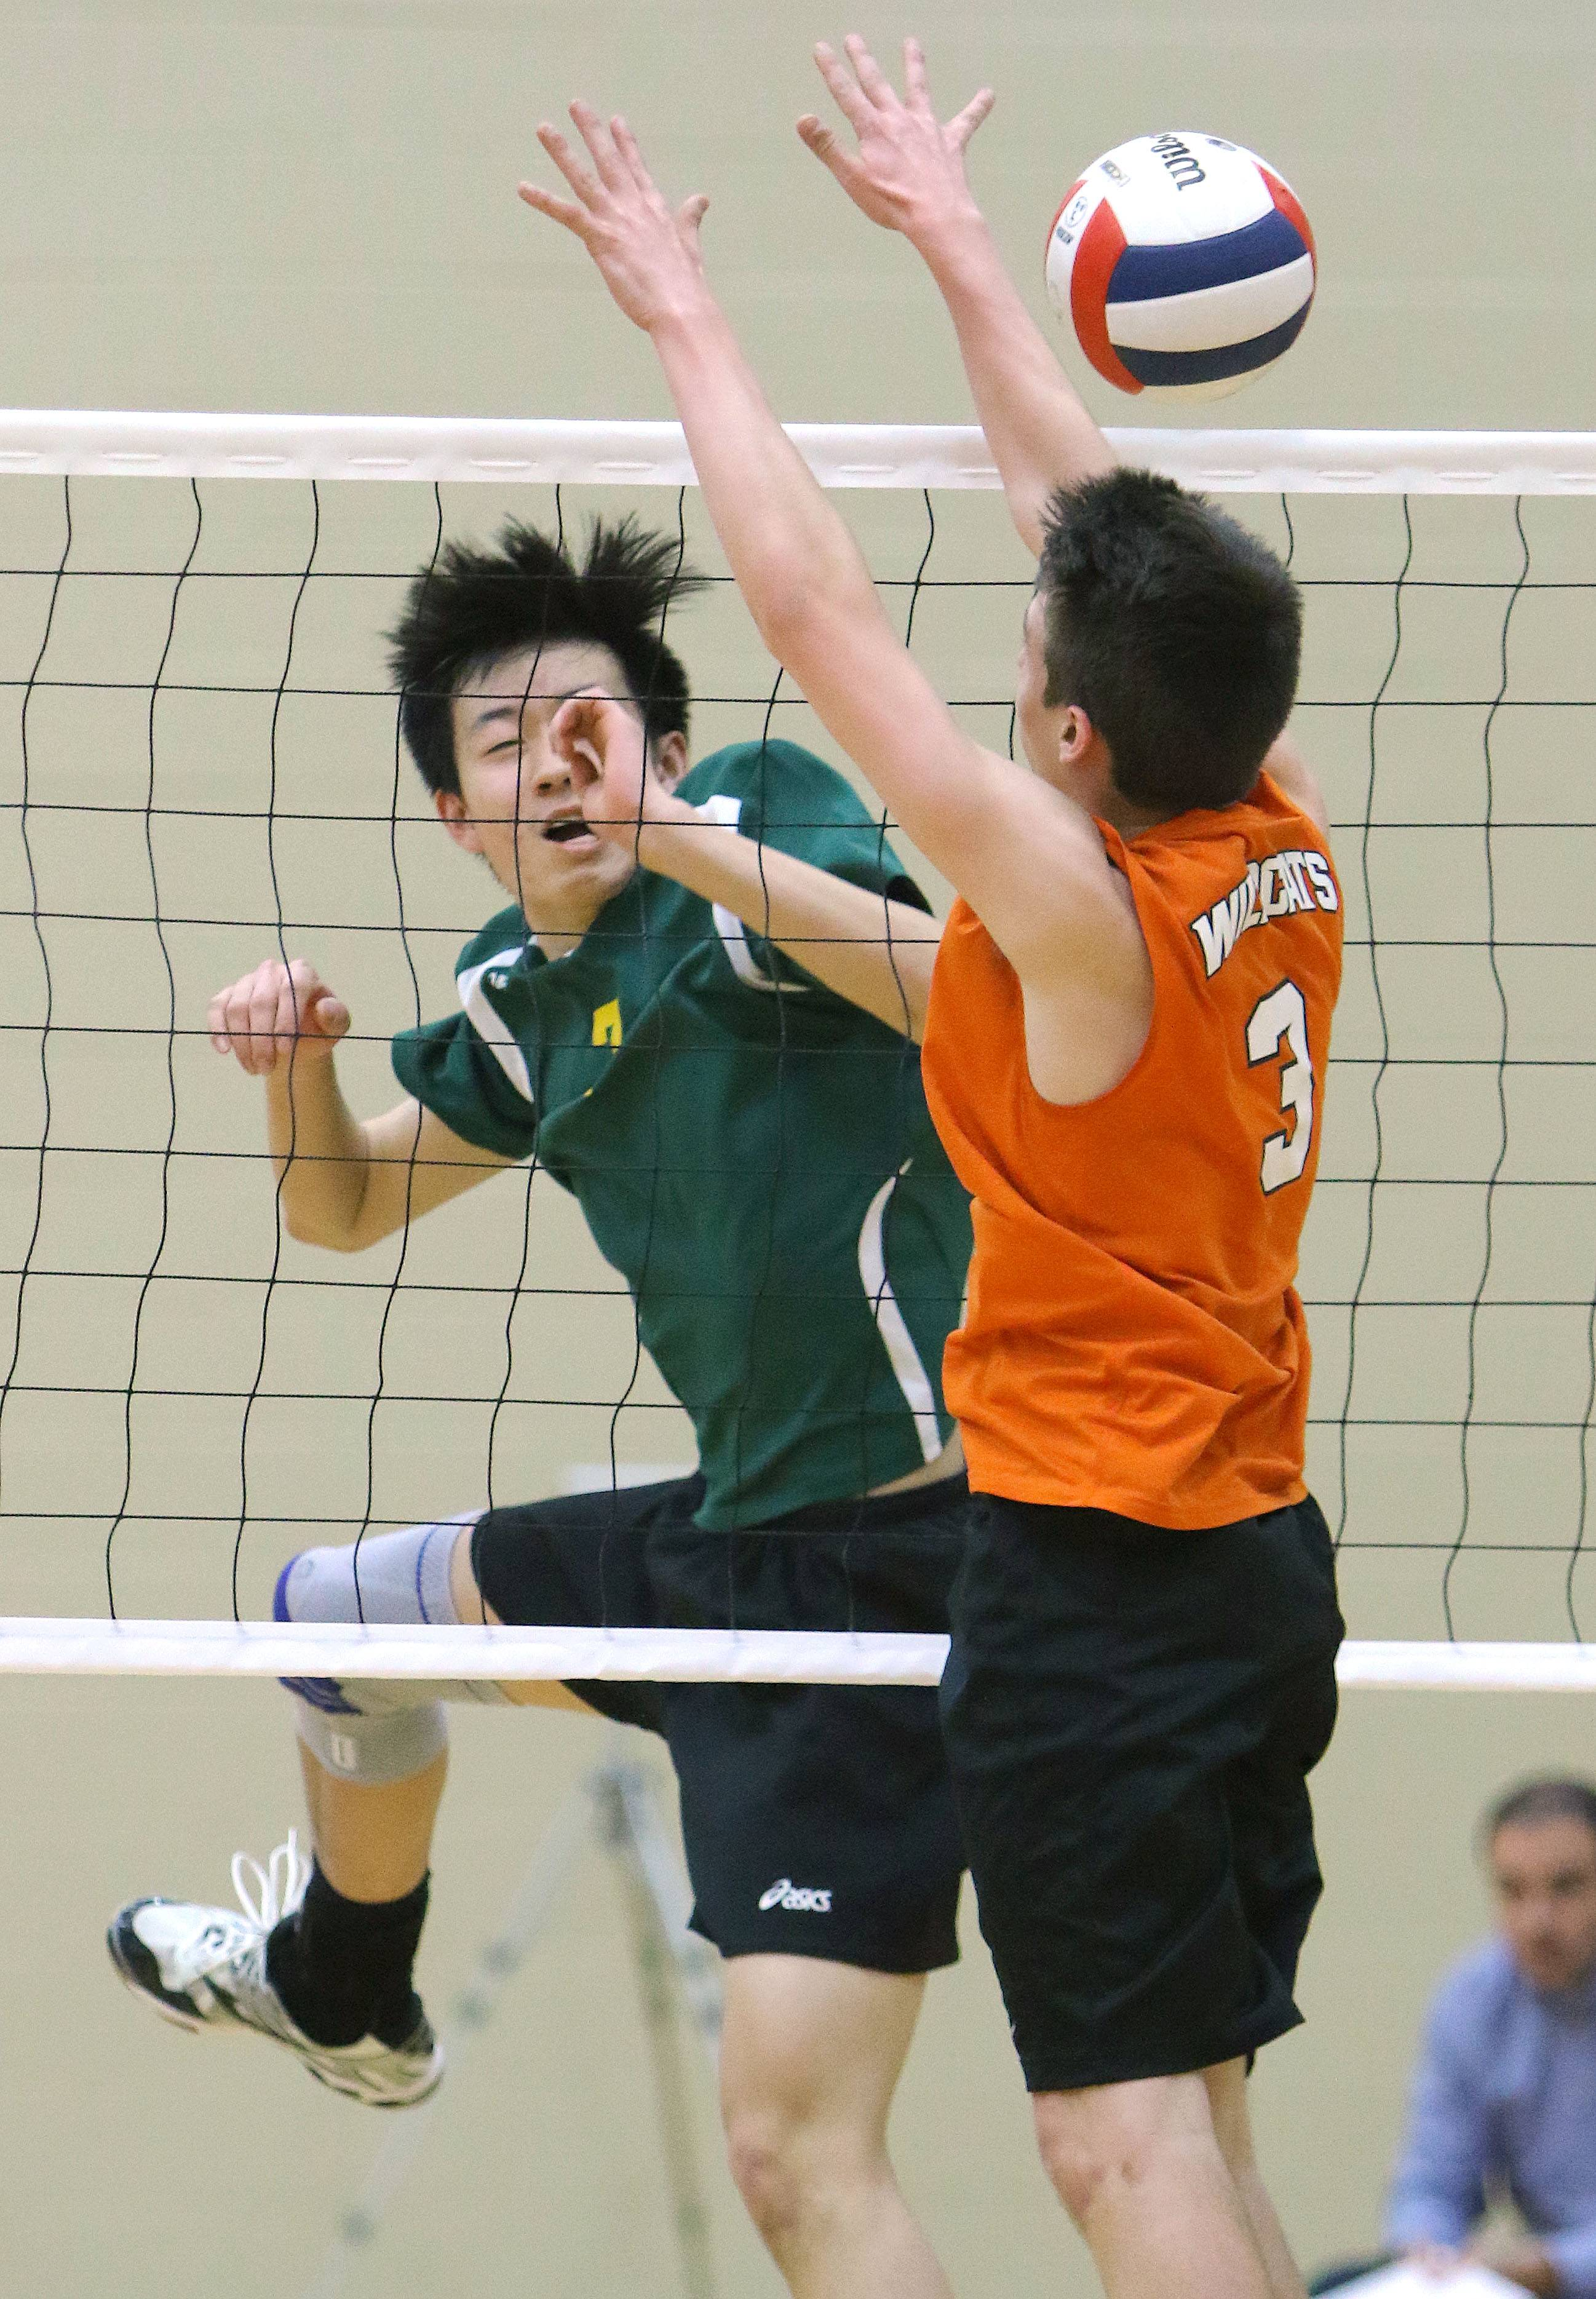 Stevenson's Leo Chen, left, and Libertyville's Ryan Hirschel meet at the net during their game Wednesday at Libertyville.